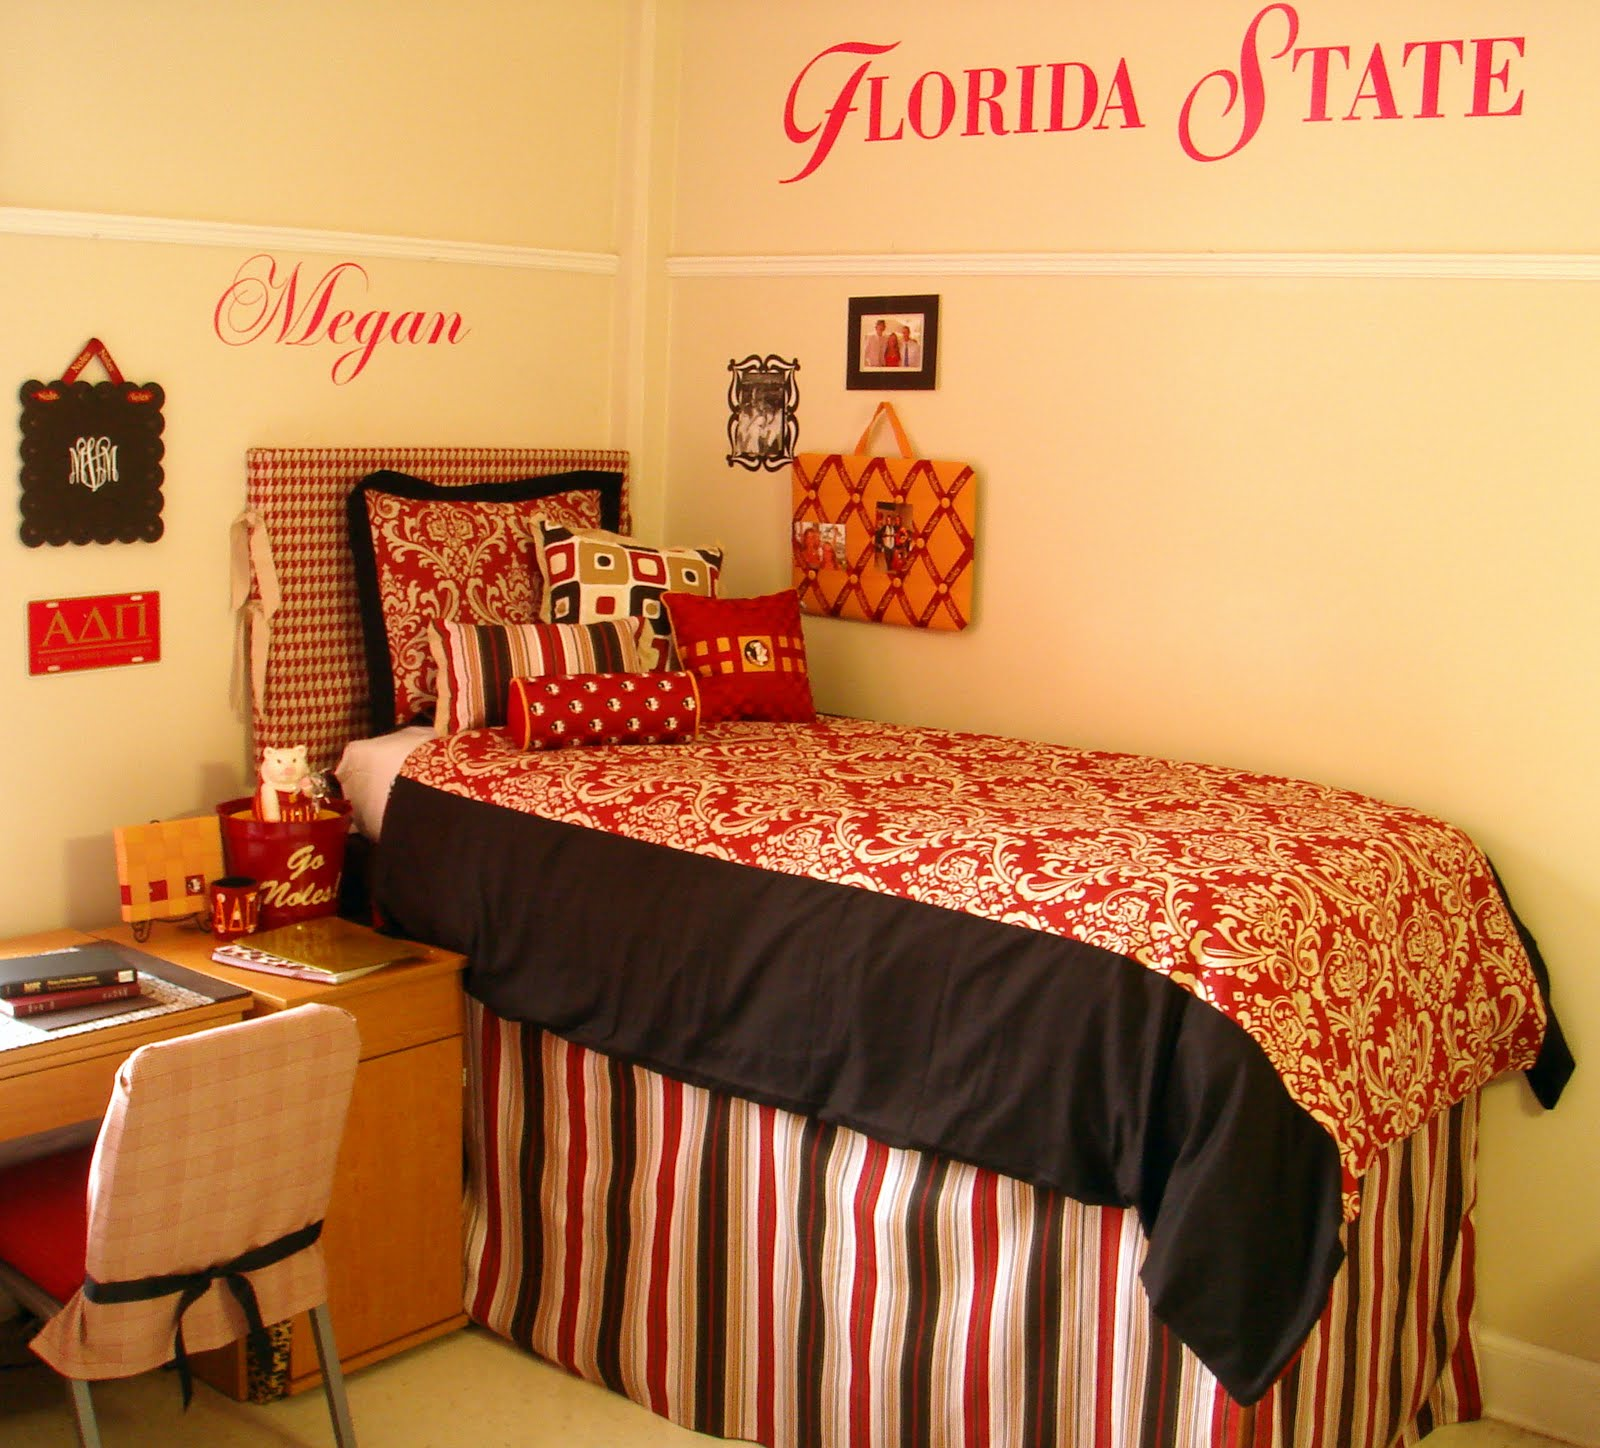 Decor 2 Ur Door: April 2010 - Dorm Room Bedding and Decor, Dorm ...